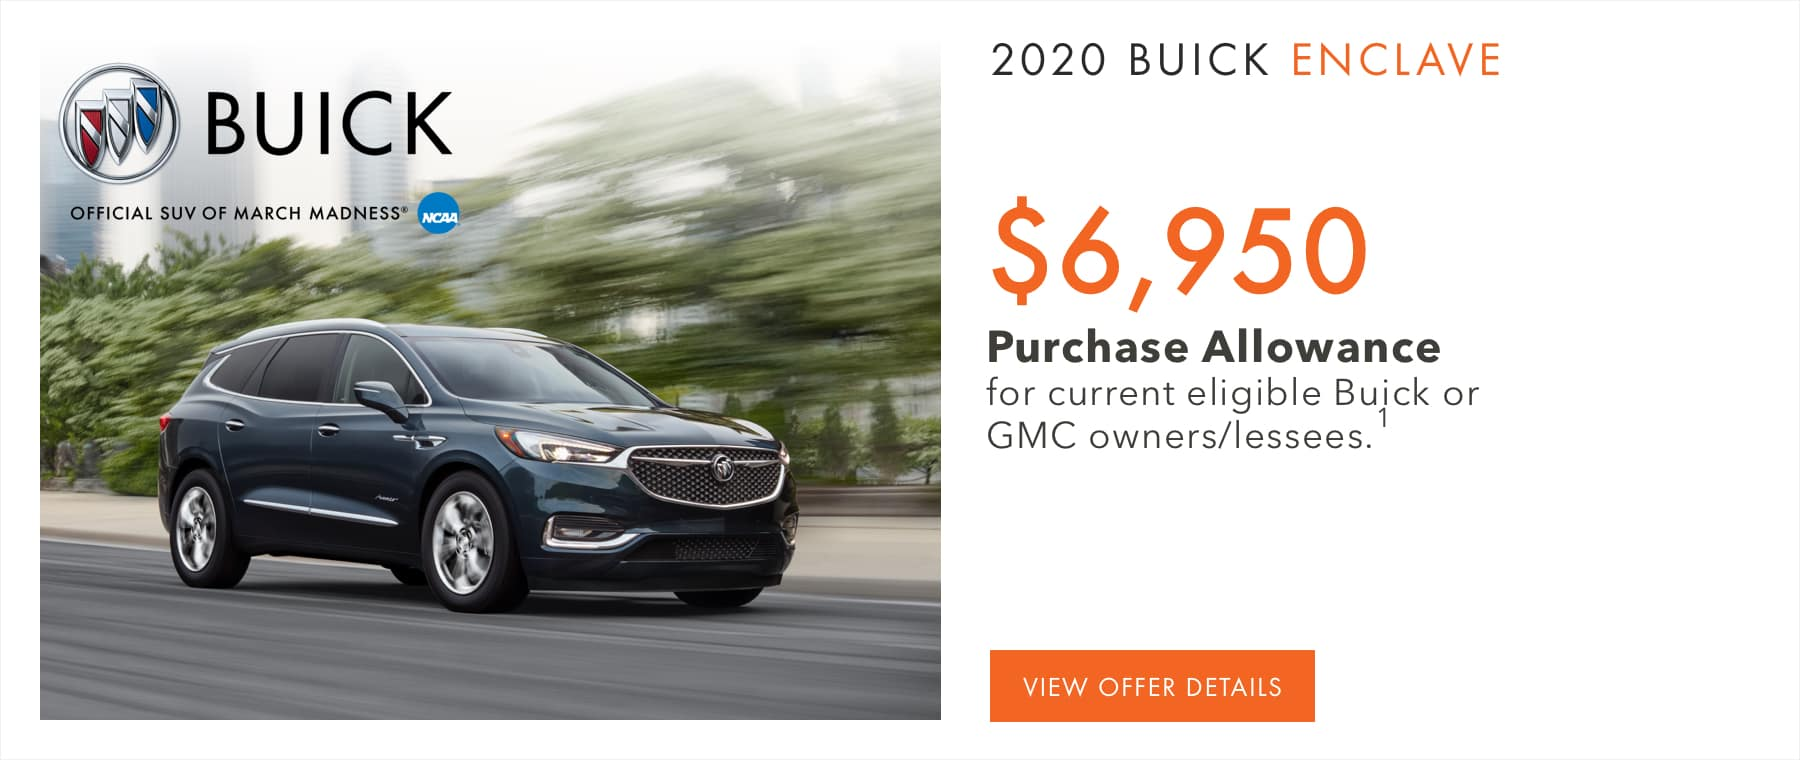 $6,950 Purchase Allowance for current eligible Buick or GMC owners/lessees.1